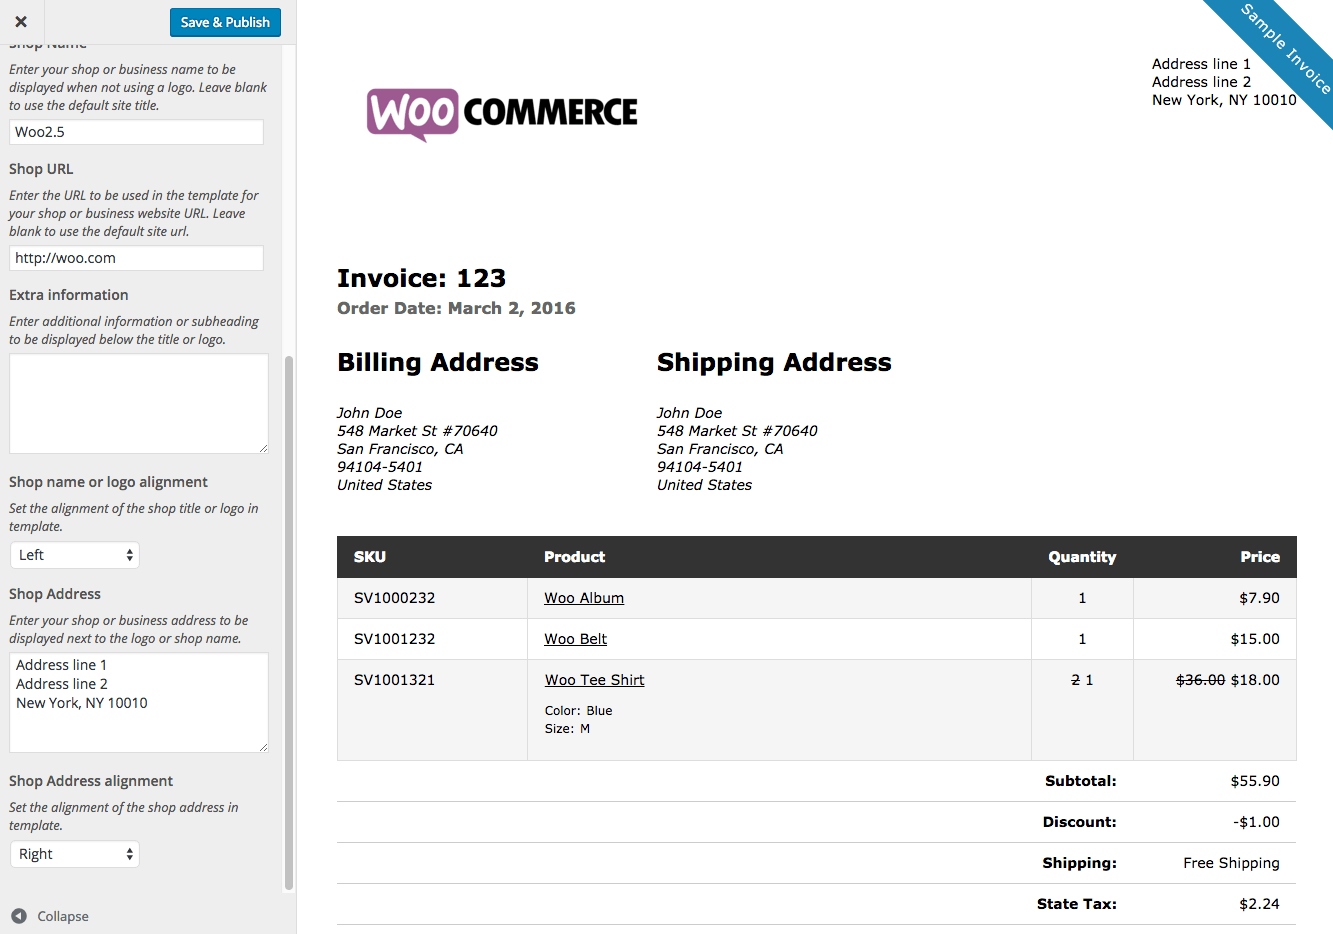 Ultrablogus  Seductive Woocommerce Print Invoices Amp Packing Lists  Woocommerce Docs With Lovable Woocommerce Print Invoices  Packing Lists Customizer With Amazing Make Sales Receipt Also Desktop Receipt Scanner In Addition Best Receipt Scanner For Mac And Enterprise Rent A Car Receipts As Well As Buy Receipt Book Additionally Non Profit Donation Receipt Form From Docswoocommercecom With Ultrablogus  Lovable Woocommerce Print Invoices Amp Packing Lists  Woocommerce Docs With Amazing Woocommerce Print Invoices  Packing Lists Customizer And Seductive Make Sales Receipt Also Desktop Receipt Scanner In Addition Best Receipt Scanner For Mac From Docswoocommercecom